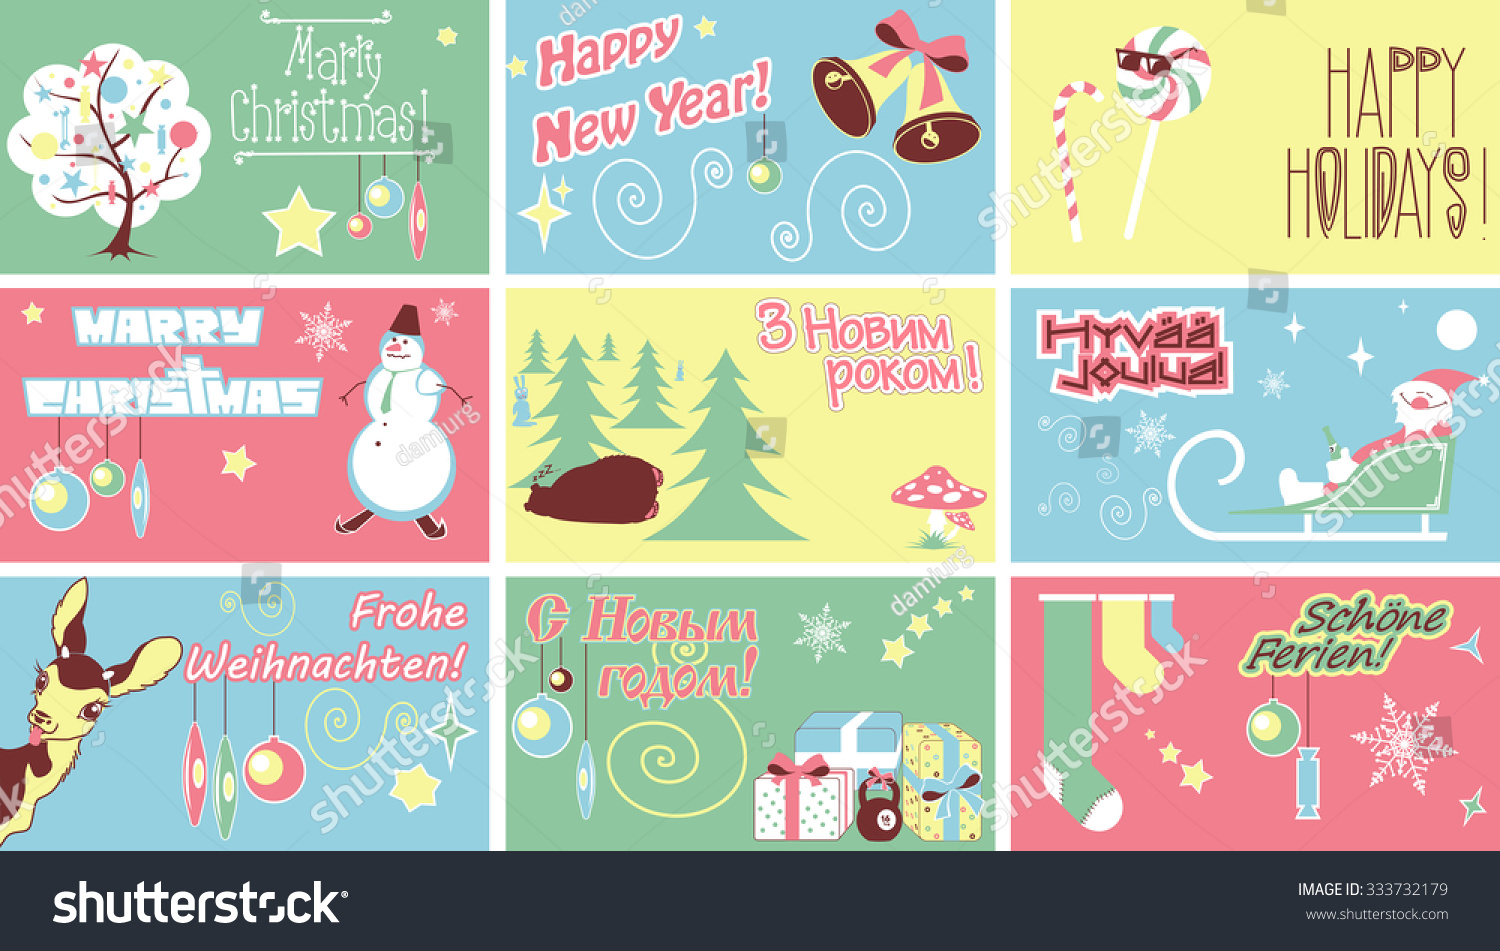 Marry christmas new year holidays humor stock vector royalty free marry christmas new year holidays humor cards contains an inscription in german finnish ukrainian m4hsunfo